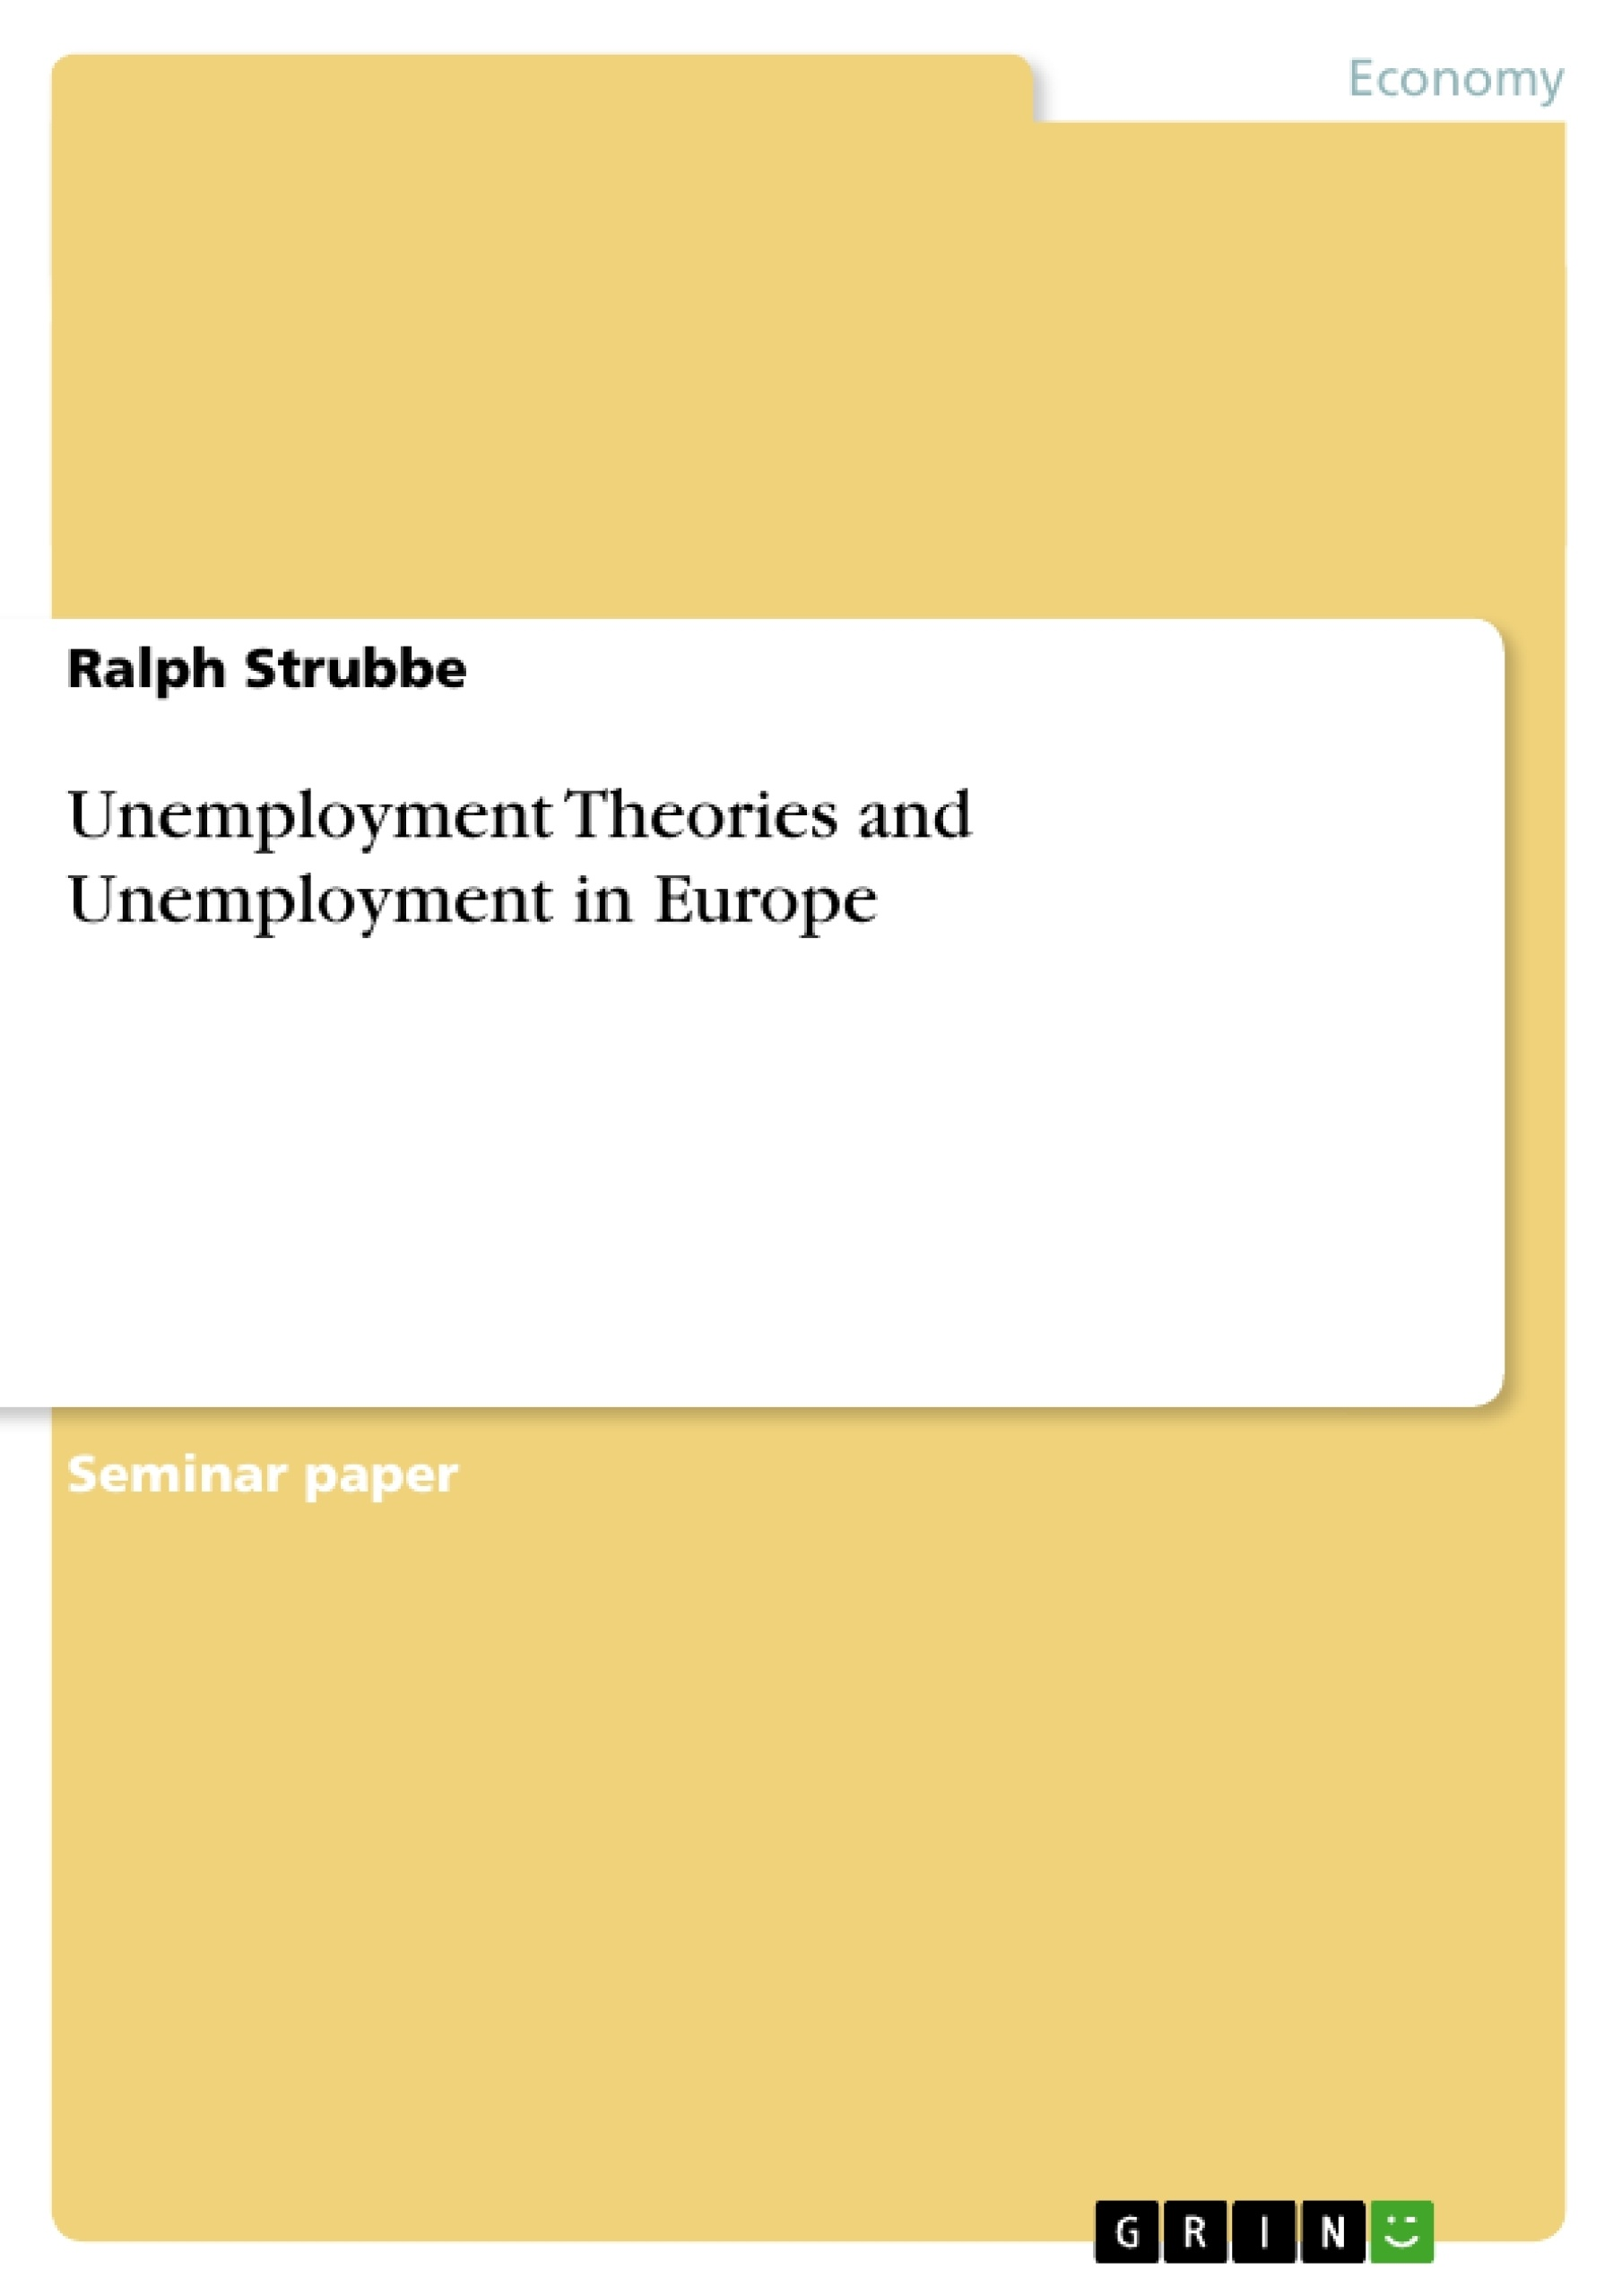 unemployment theories and unemployment in europe publish your unemployment theories and unemployment in europe publish your master s thesis bachelor s thesis essay or term paper